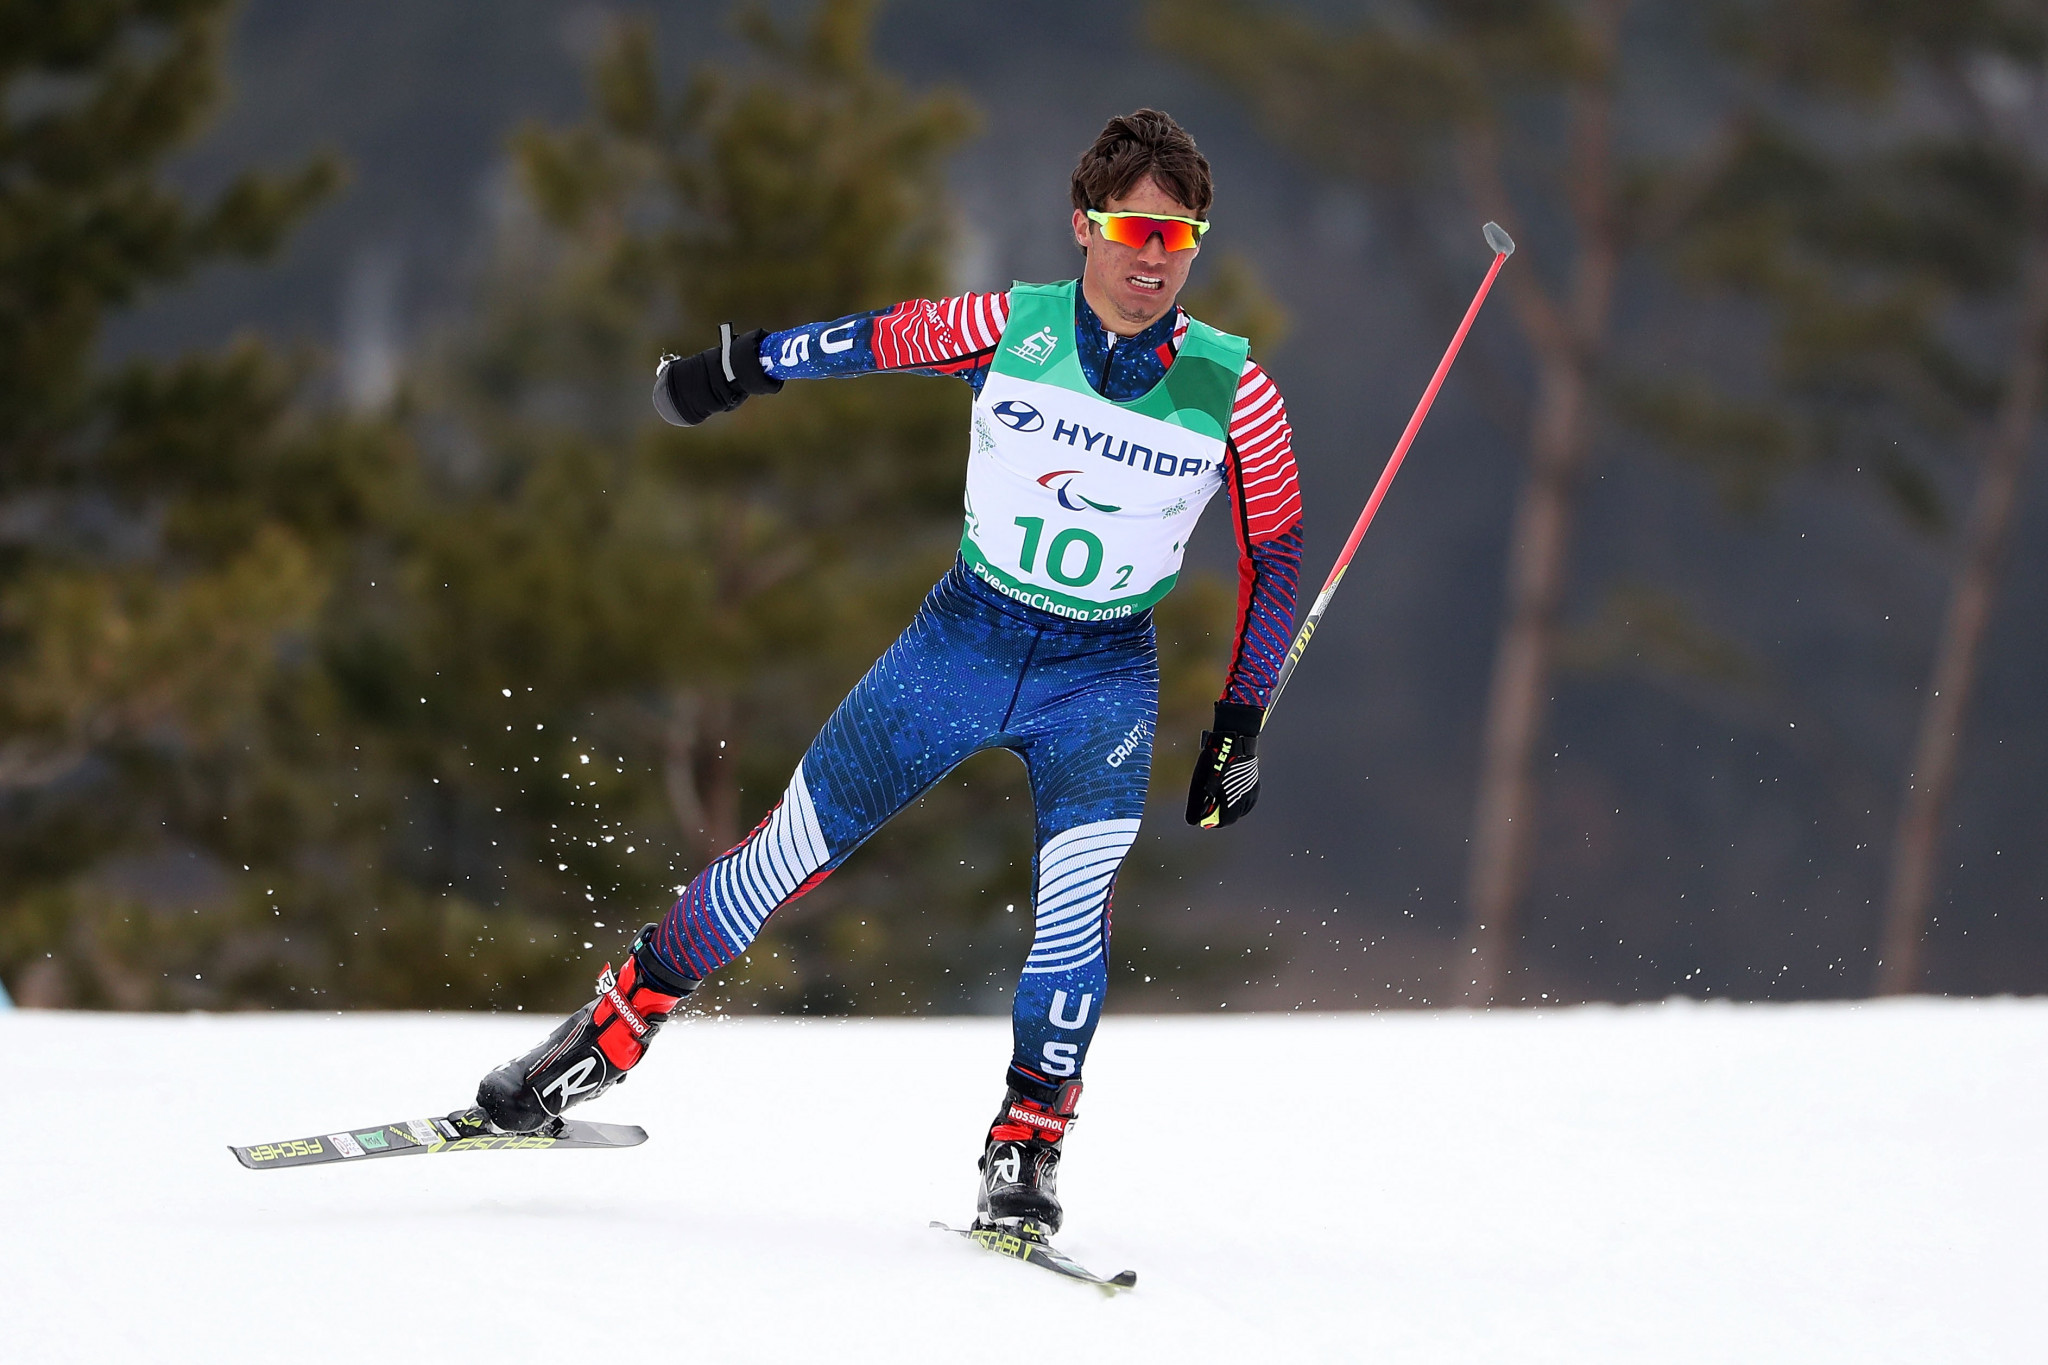 Östersund announced as host of 2020 World Para Biathlon Championships